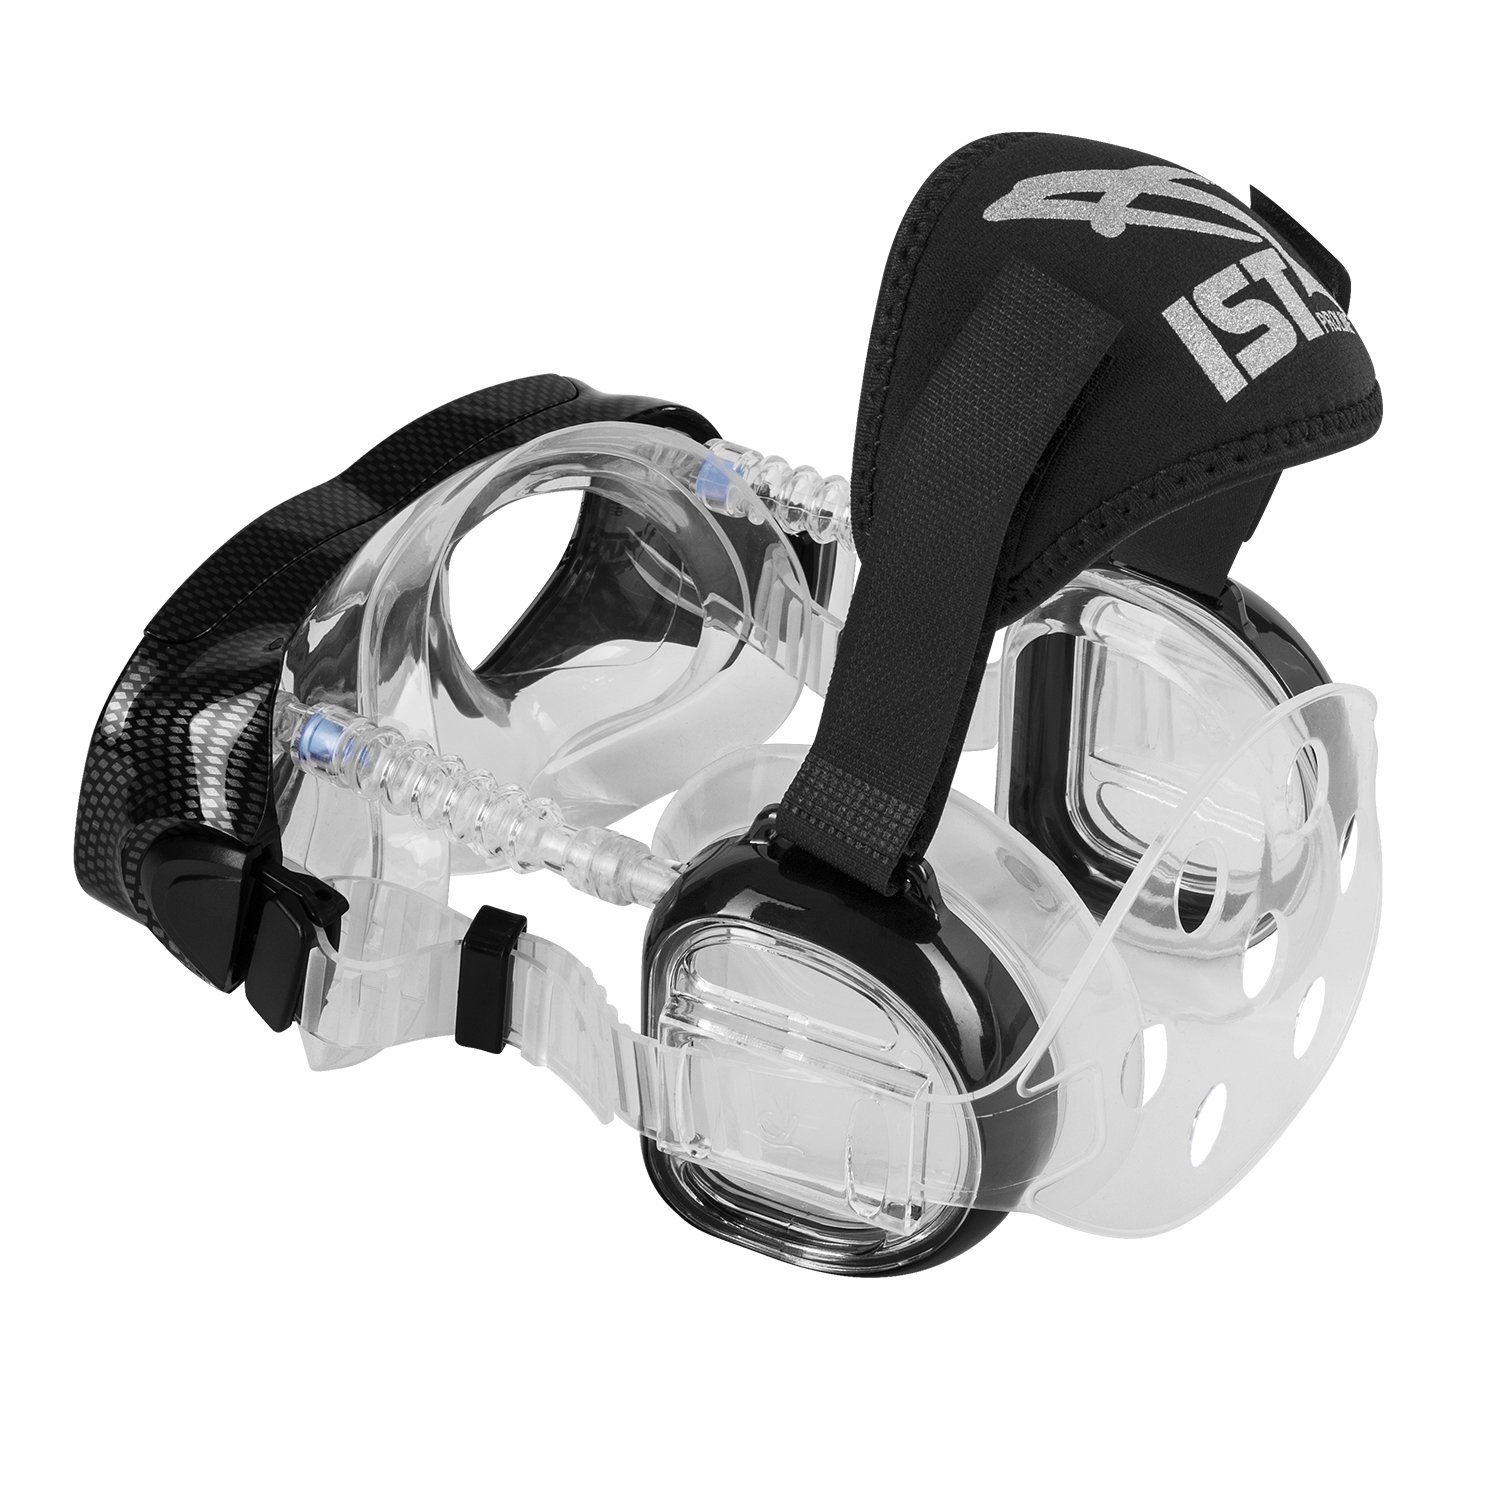 f676334ba9 Pro Ear Scuba Diving Mask for All Around Ear Protection RX Prescription  available IST